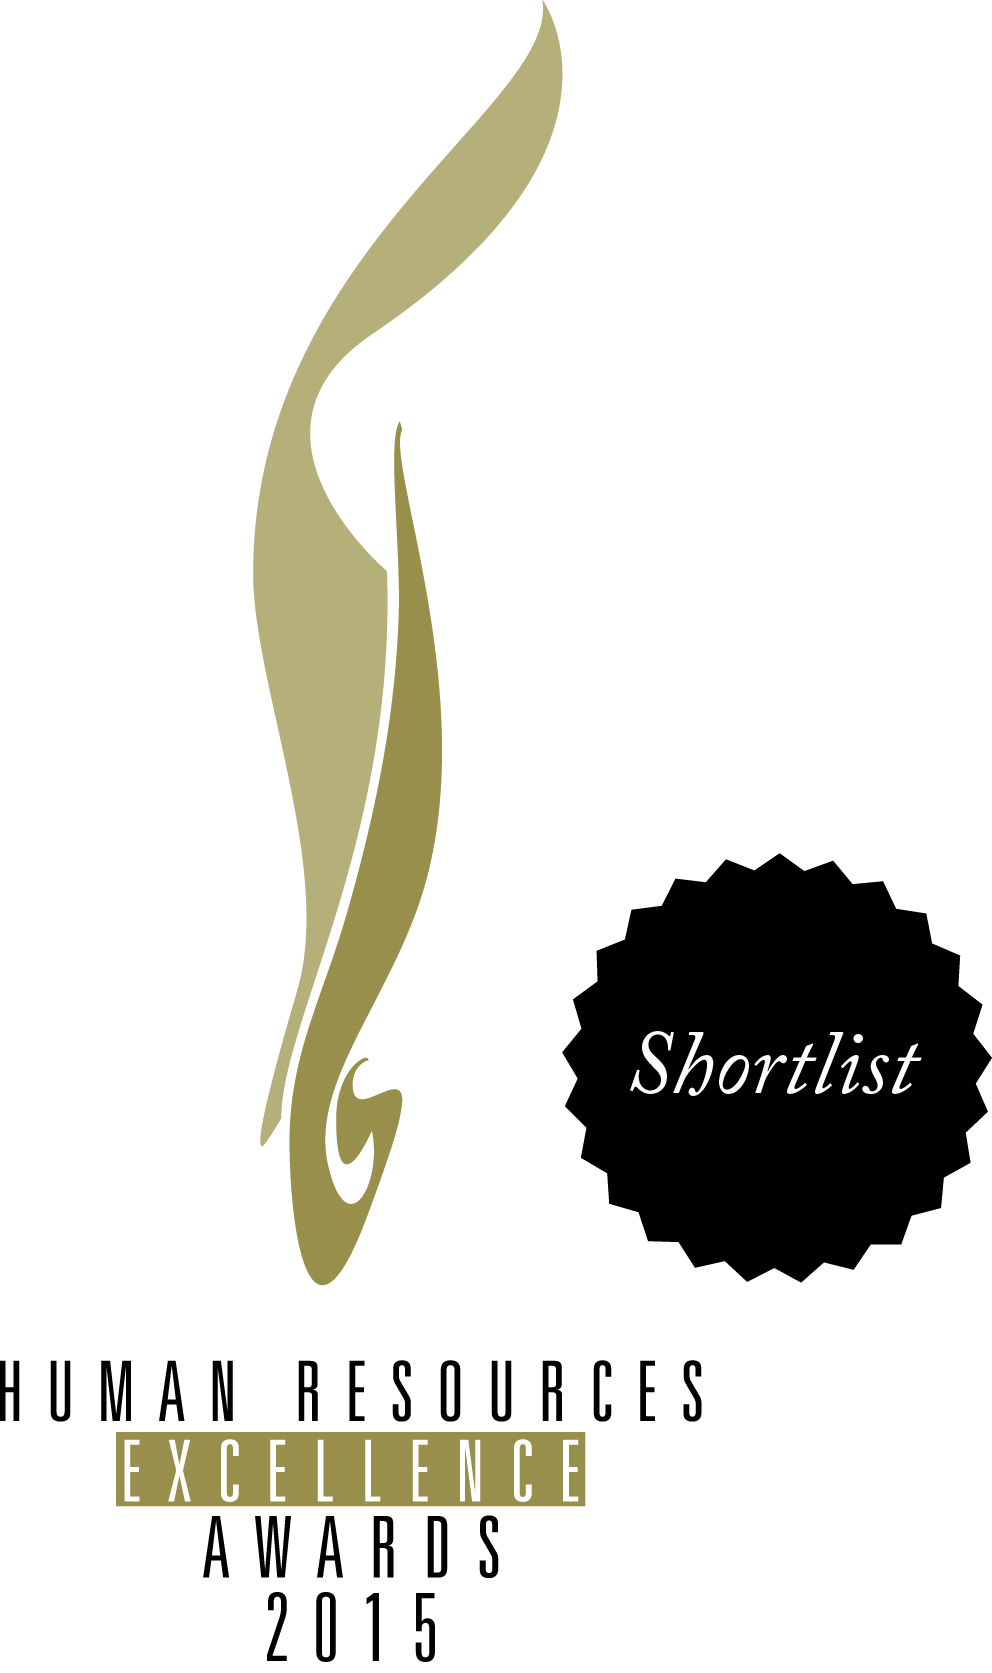 The 21-Day Mindfulness Challenge was shortlisted for the HR-Excellence Award 2015